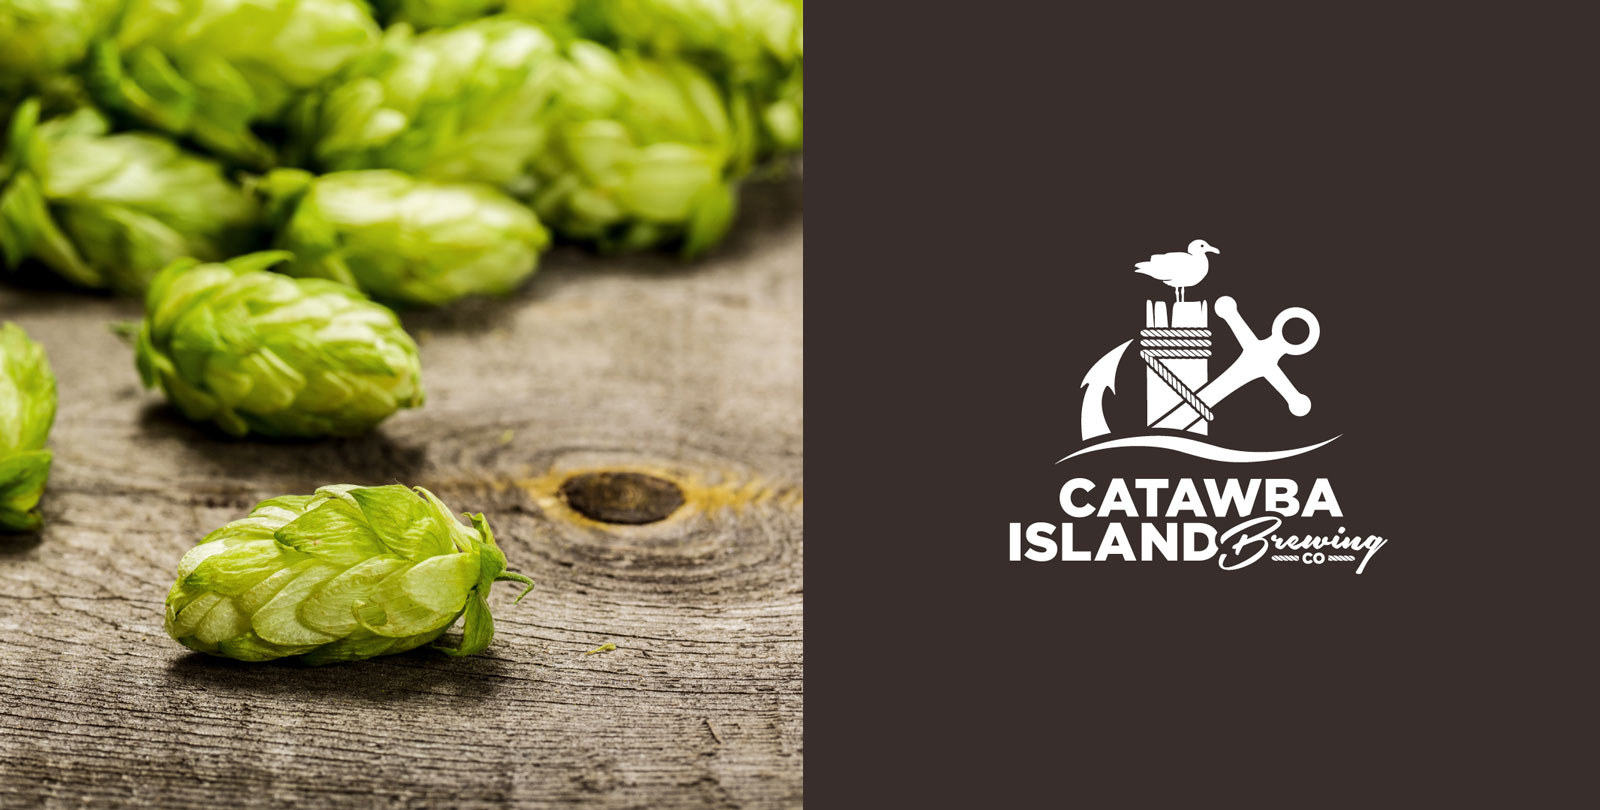 catawba-island-brewing-co-white-logo.jpg